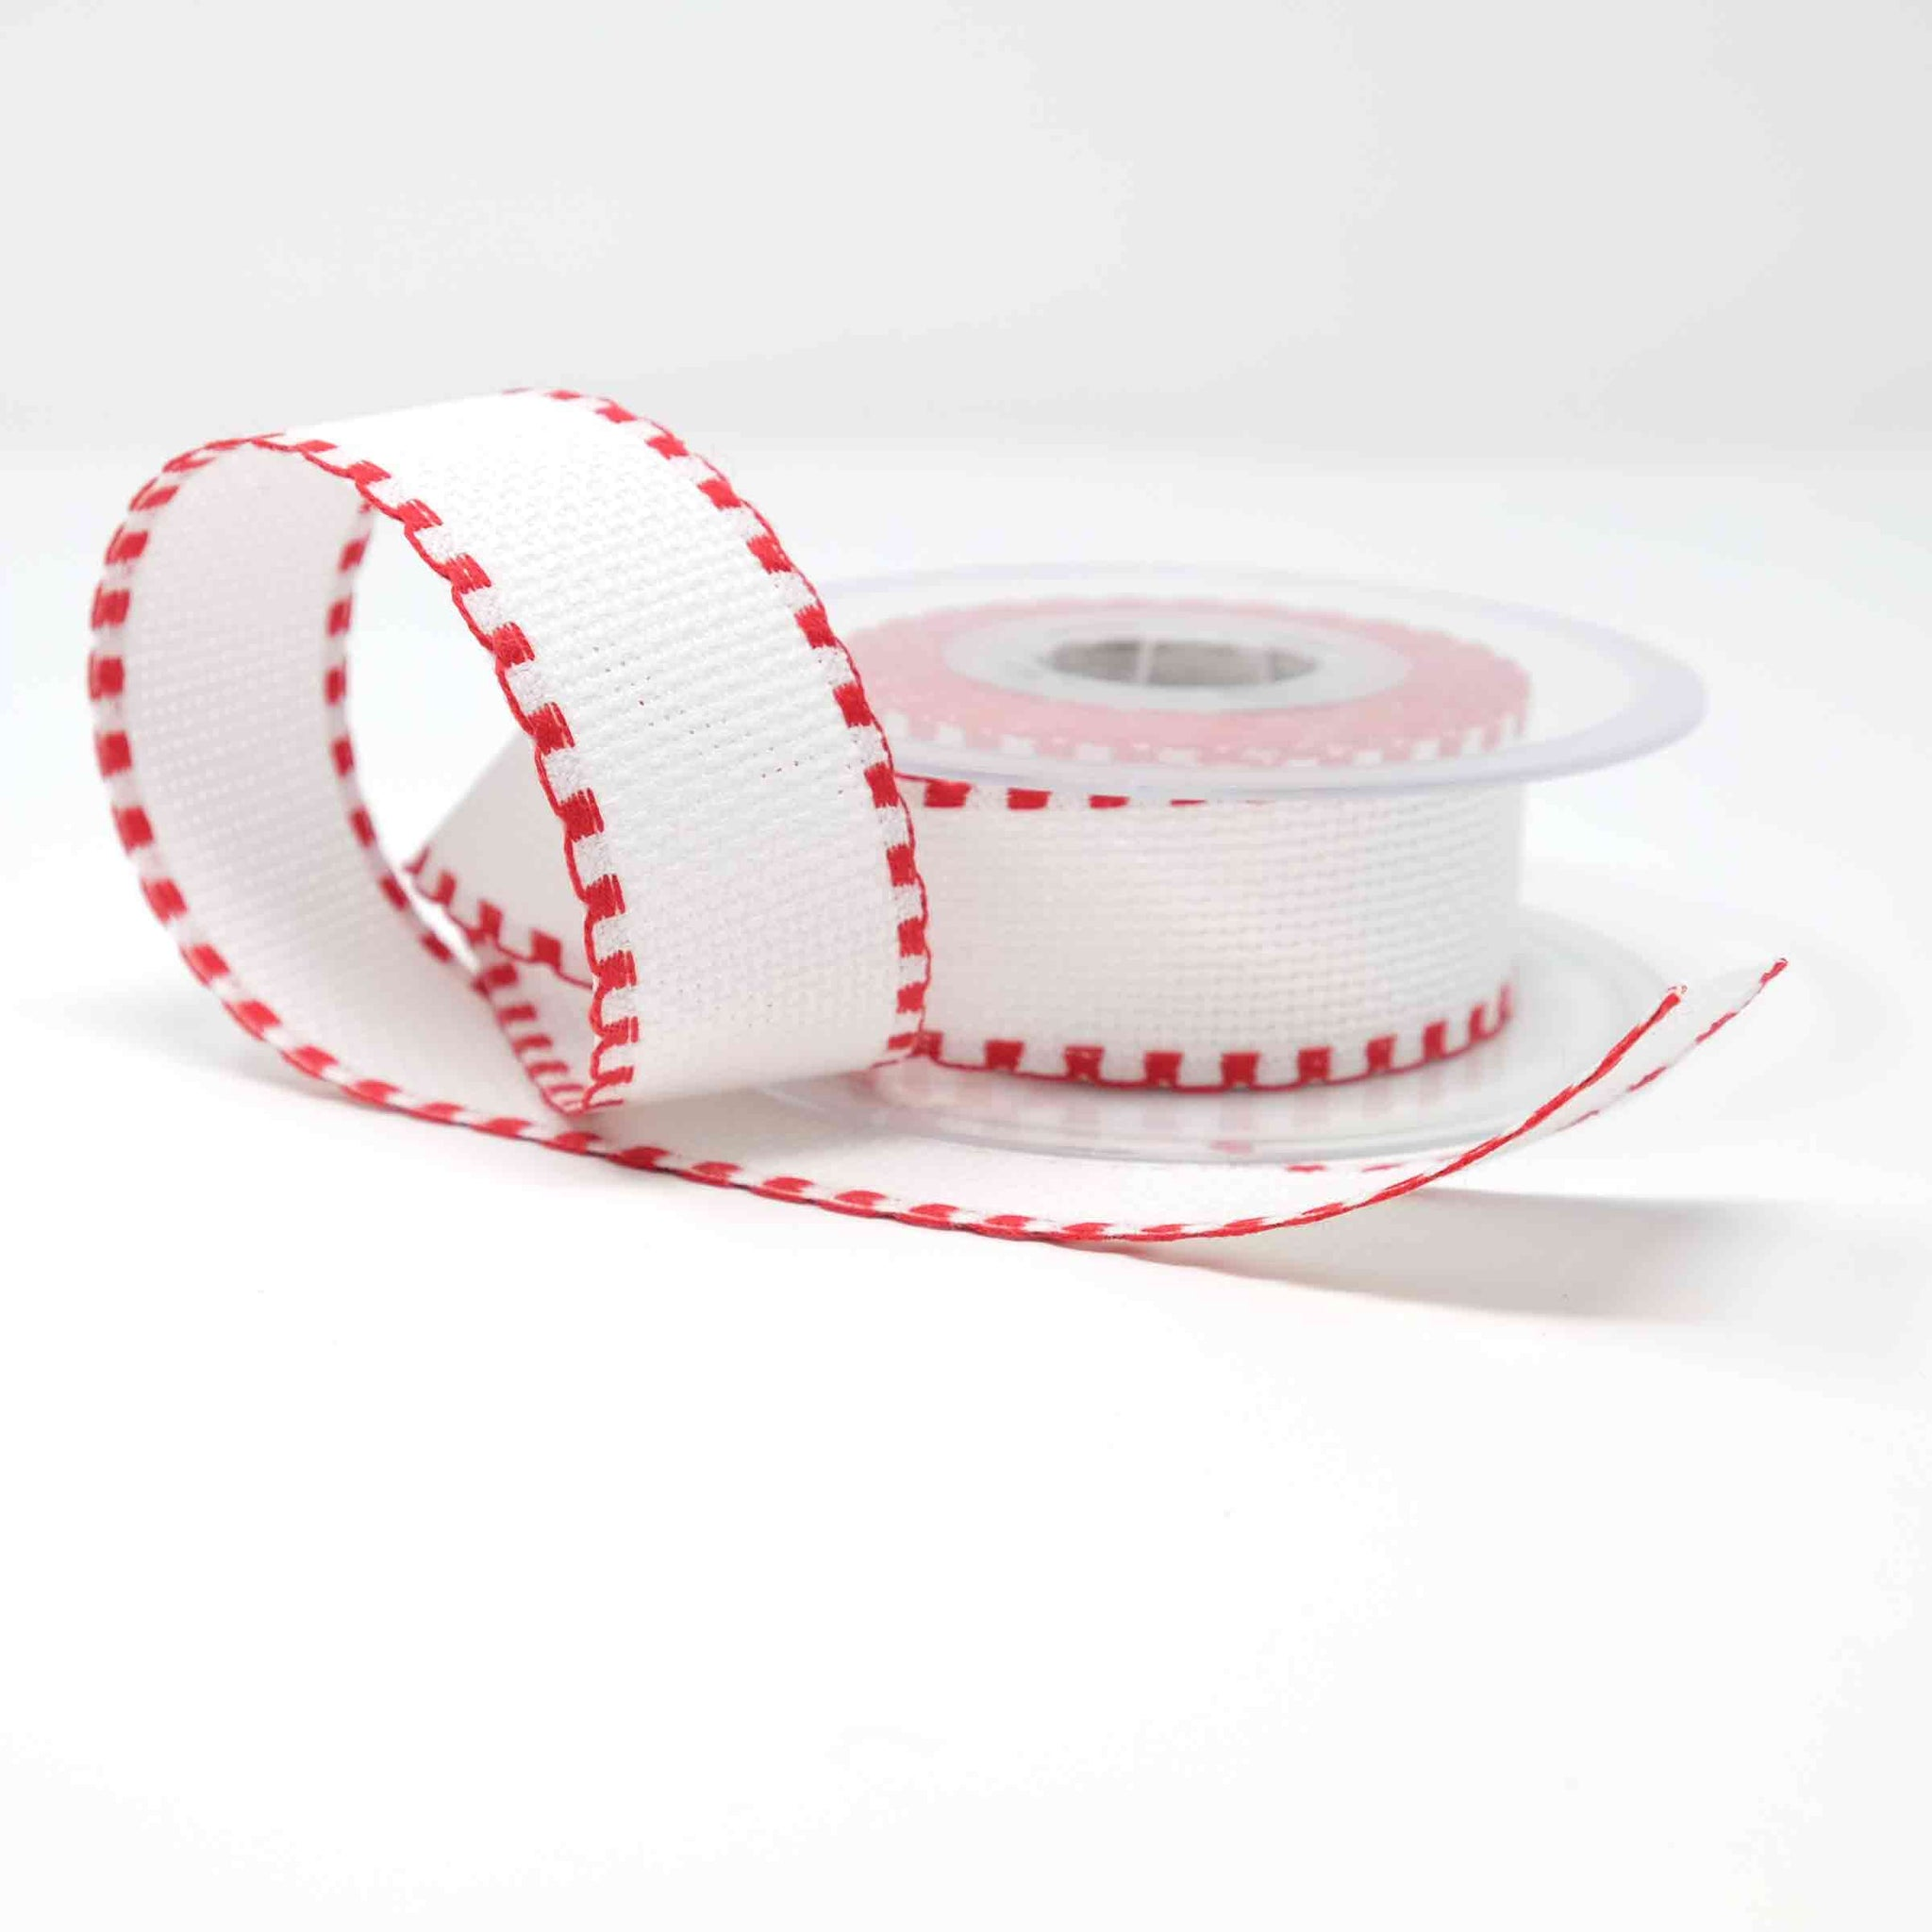 Stitch Garden Aida Band 14 count 30mm (46) White & Red